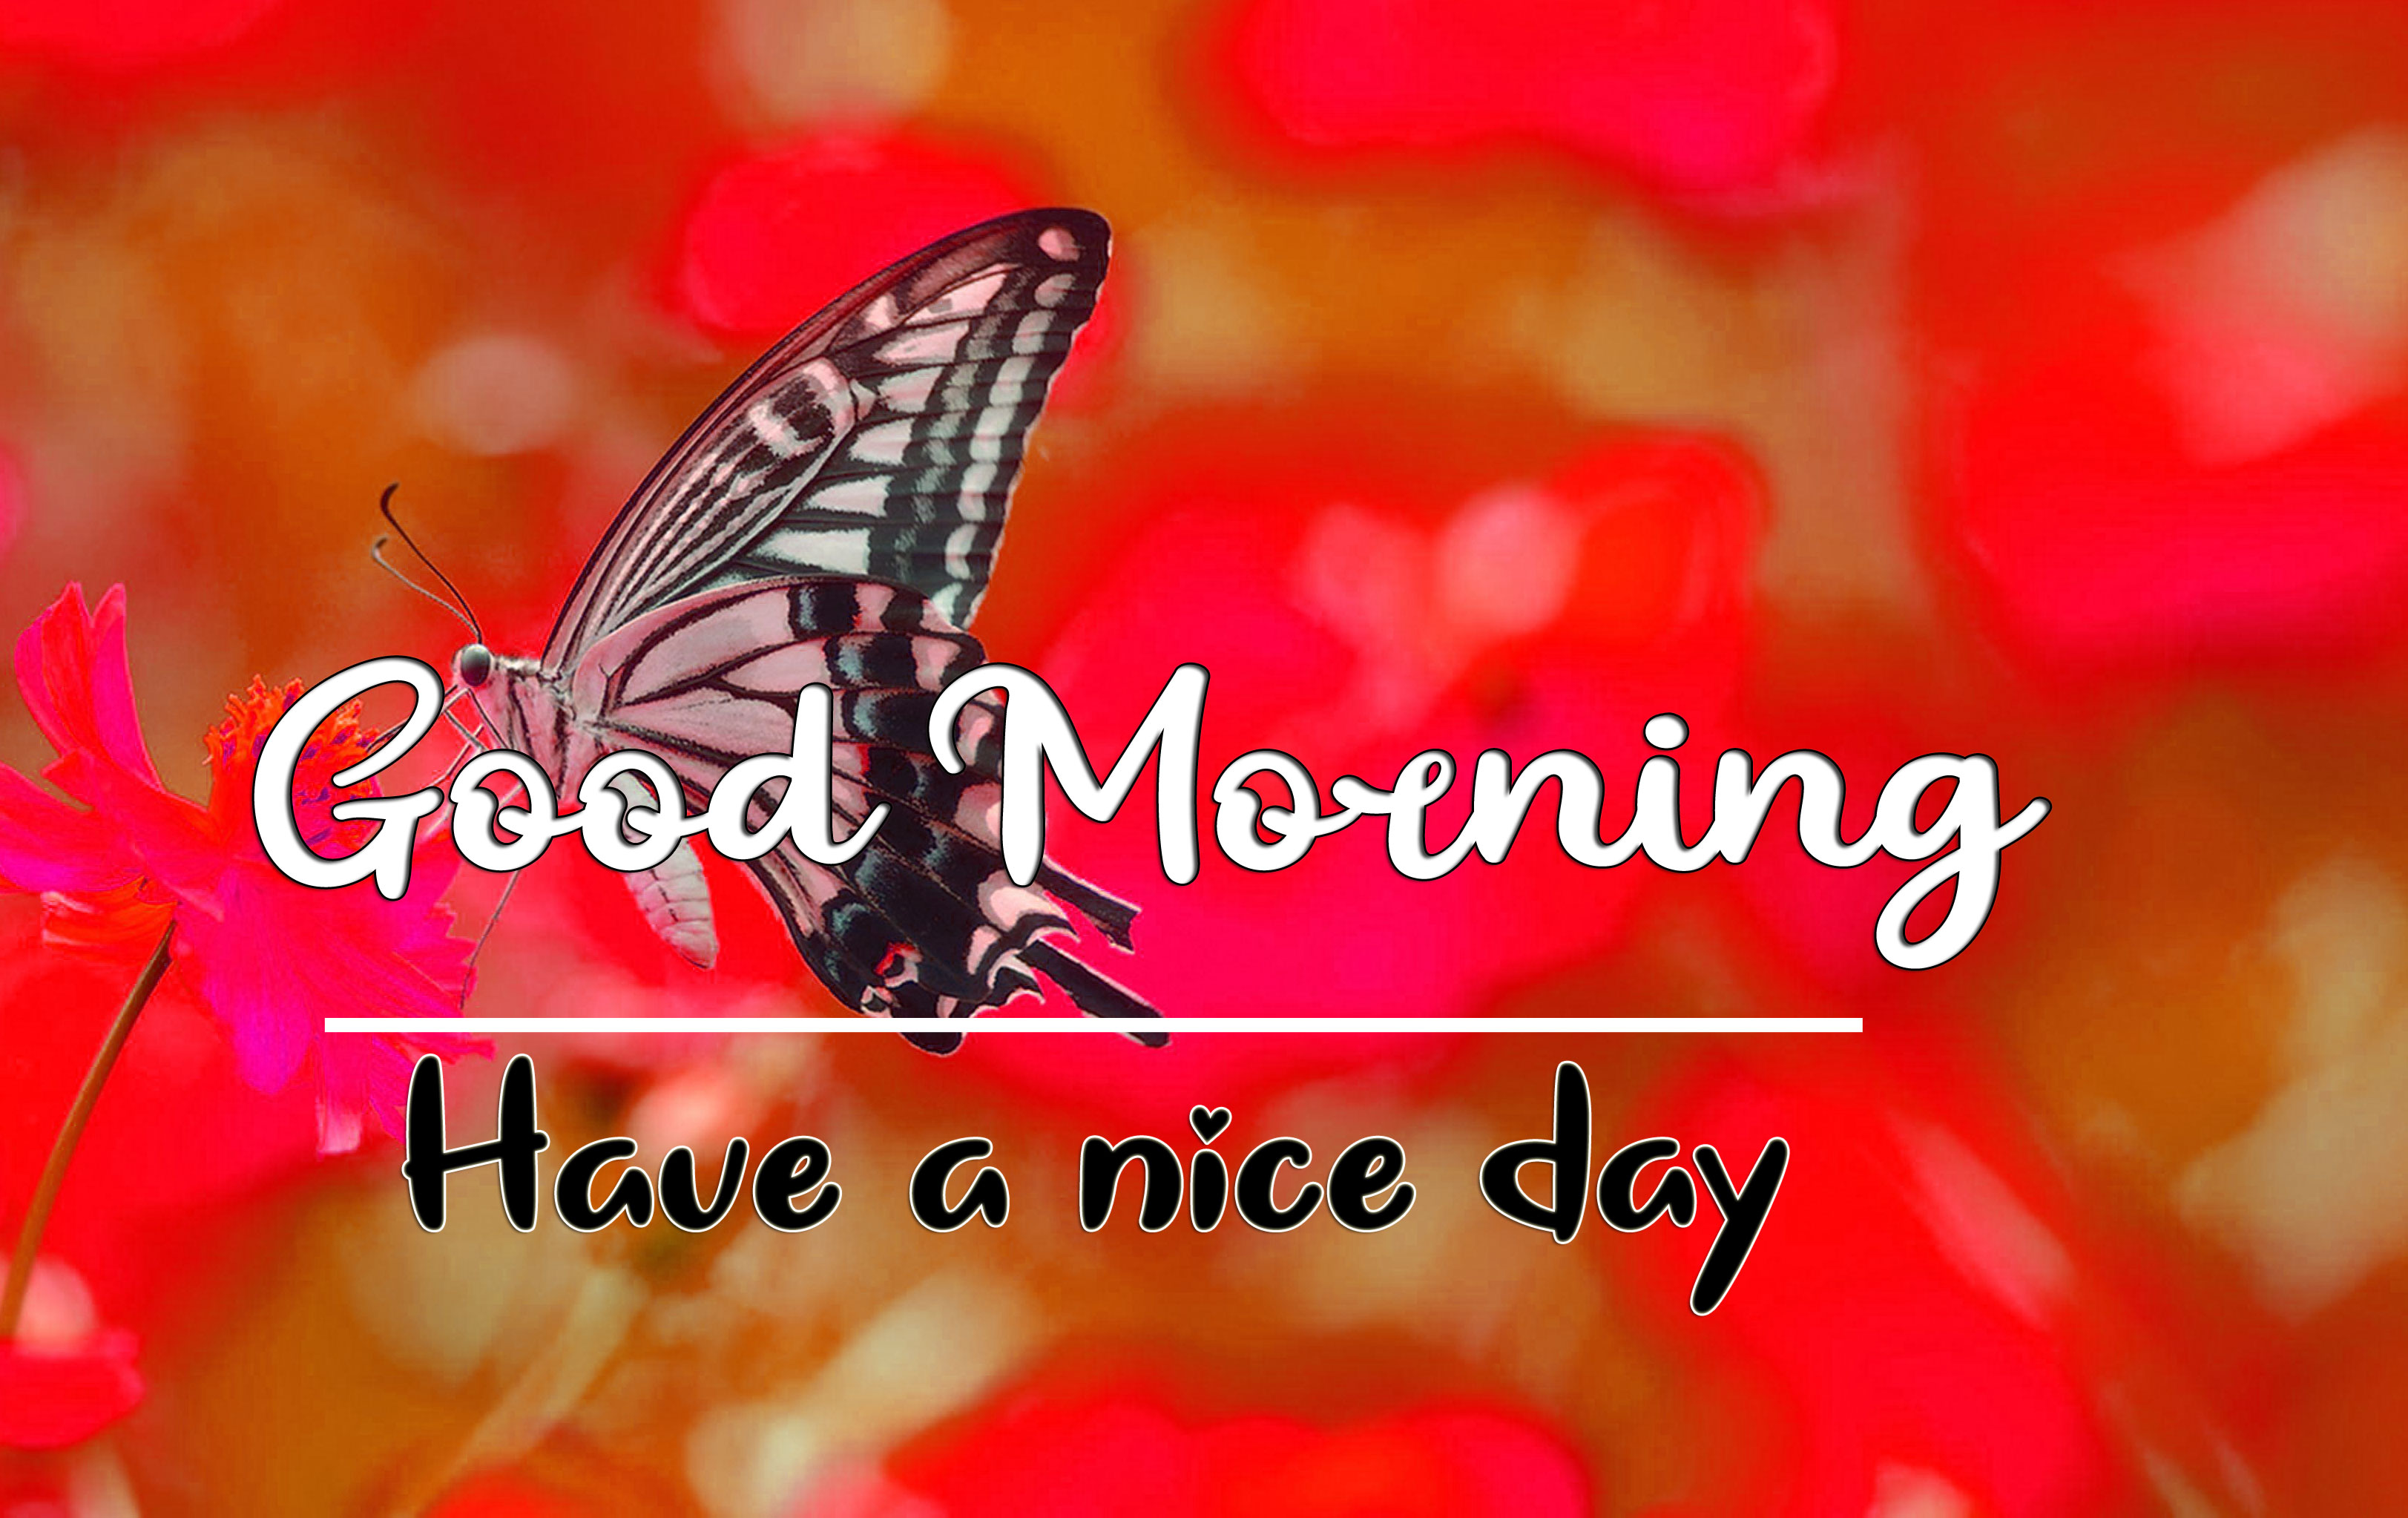 Good Morning Wishes Images HD 1080p 34